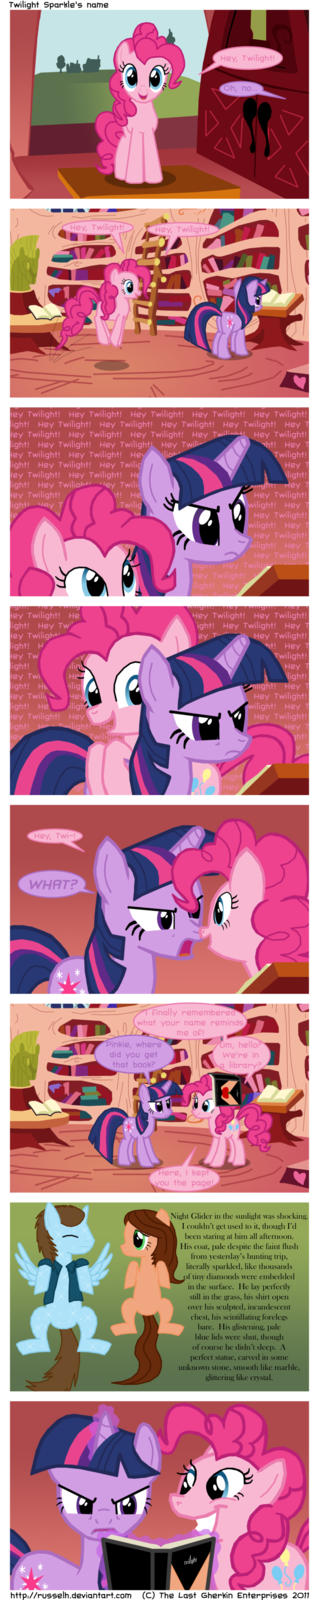 twilight_sparkle__s_name_by_russelh-d3cow26.png